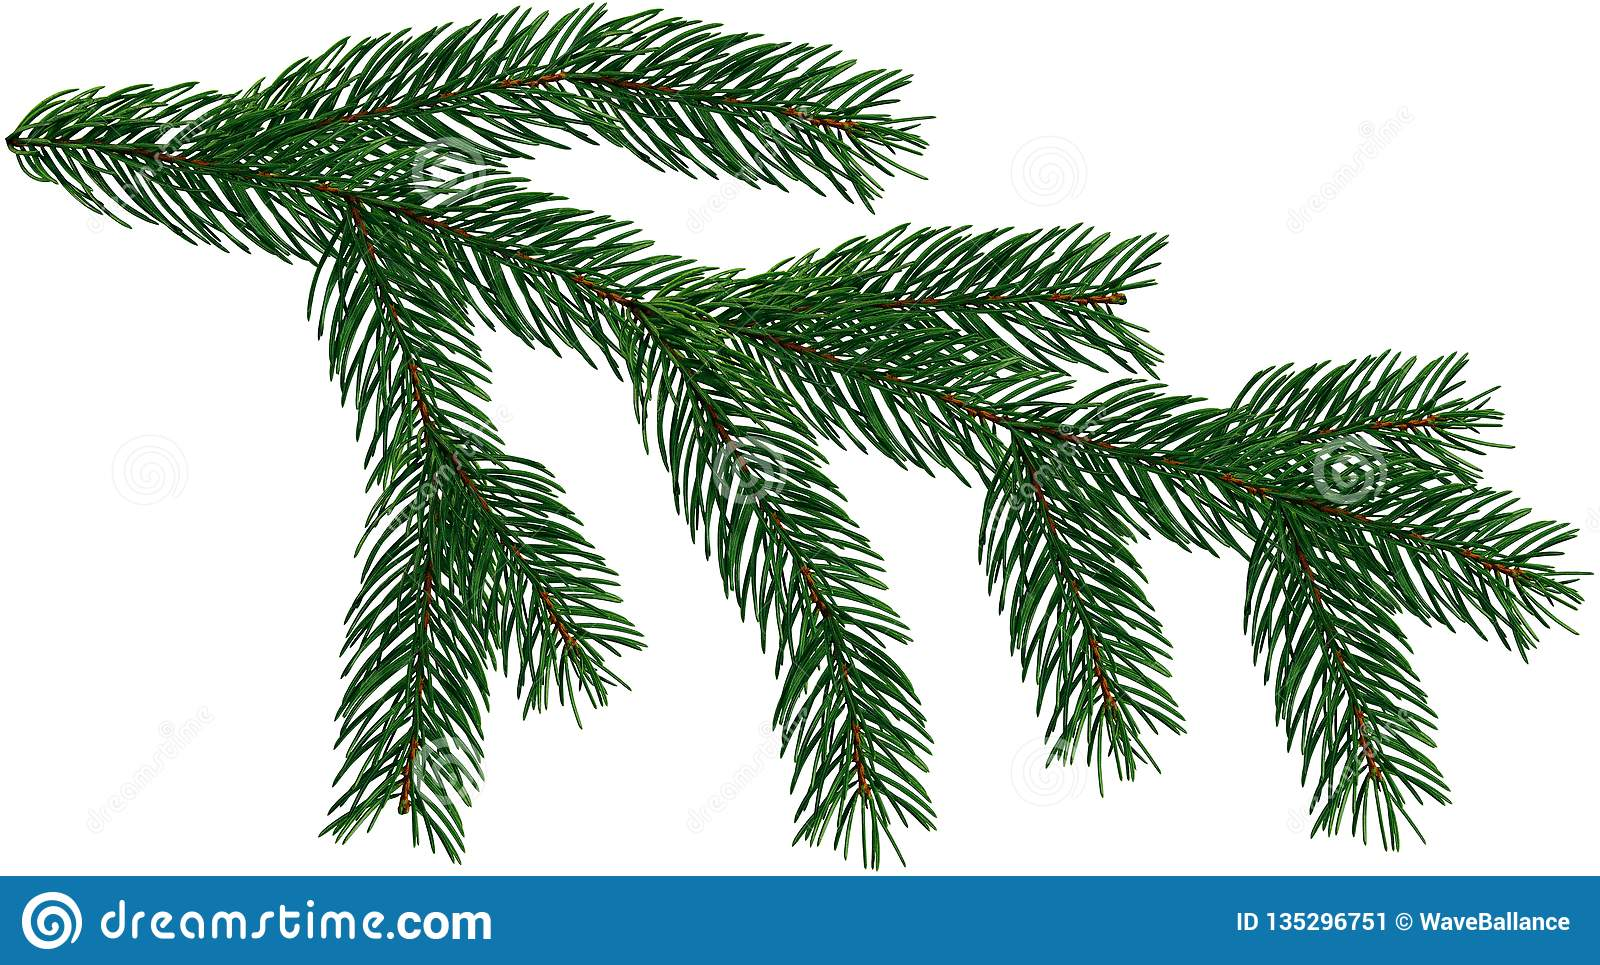 Christmas Branch Png.Large Fir Tree Branch Christmas Tree Is Isolated On A White